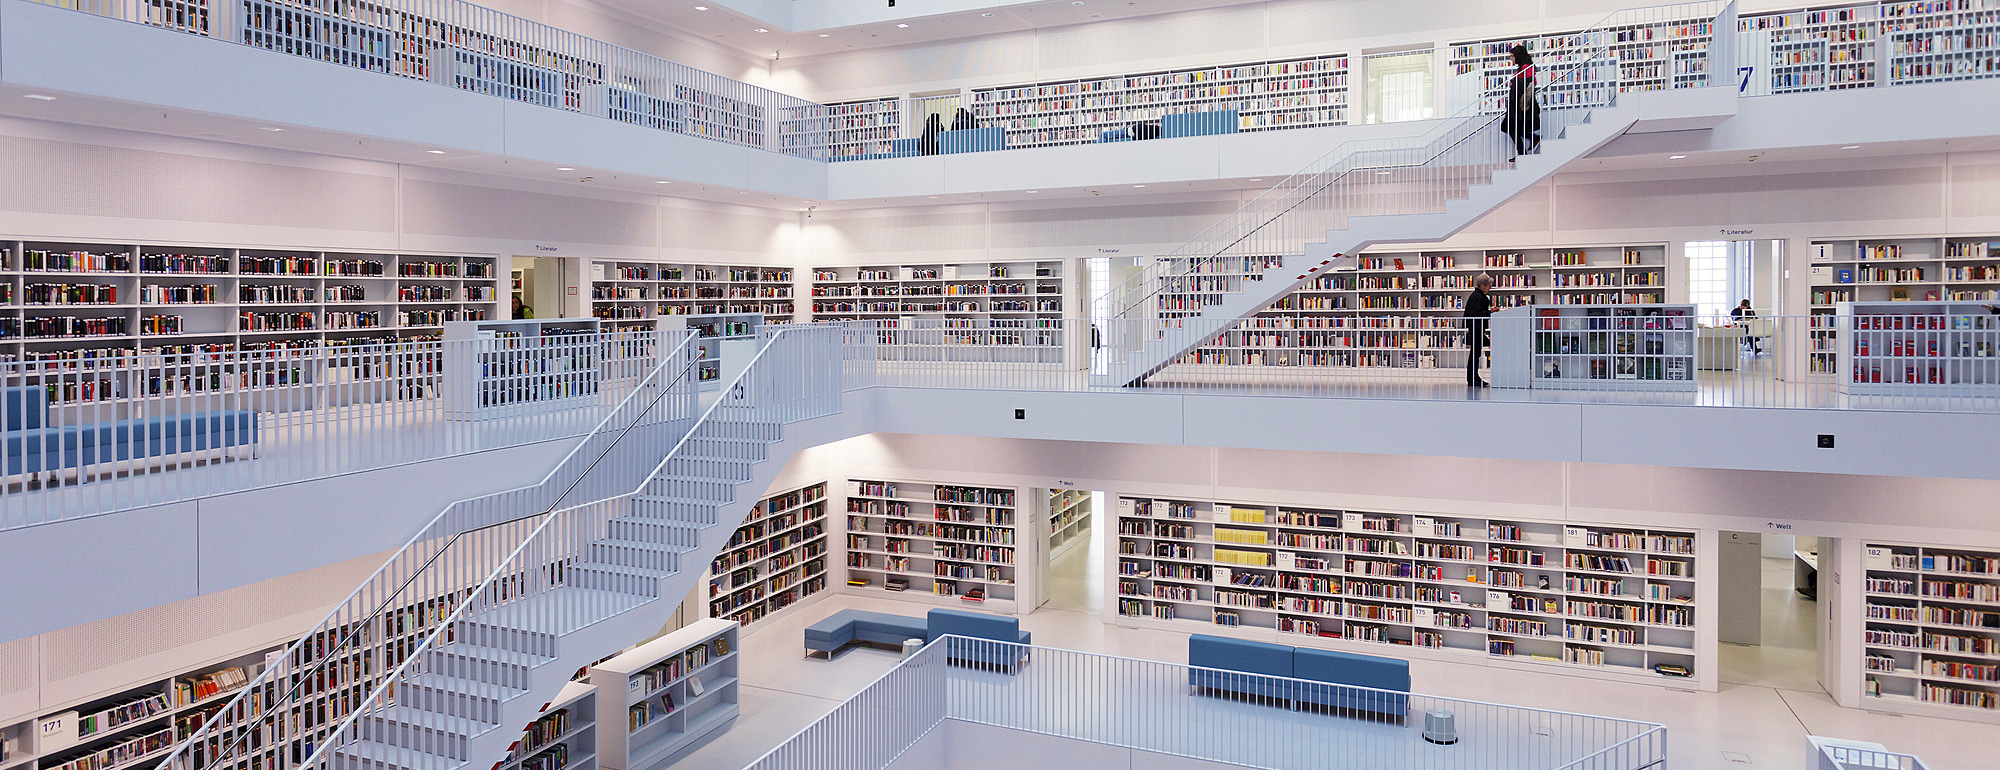 1160-2354 ( Markus Lange ) - Interior view, New Public Library, Mailaender Platz Square, Architect Prof. Eun Young Yi, Stuttgart, Baden Wurttemberg, Germay, Europe